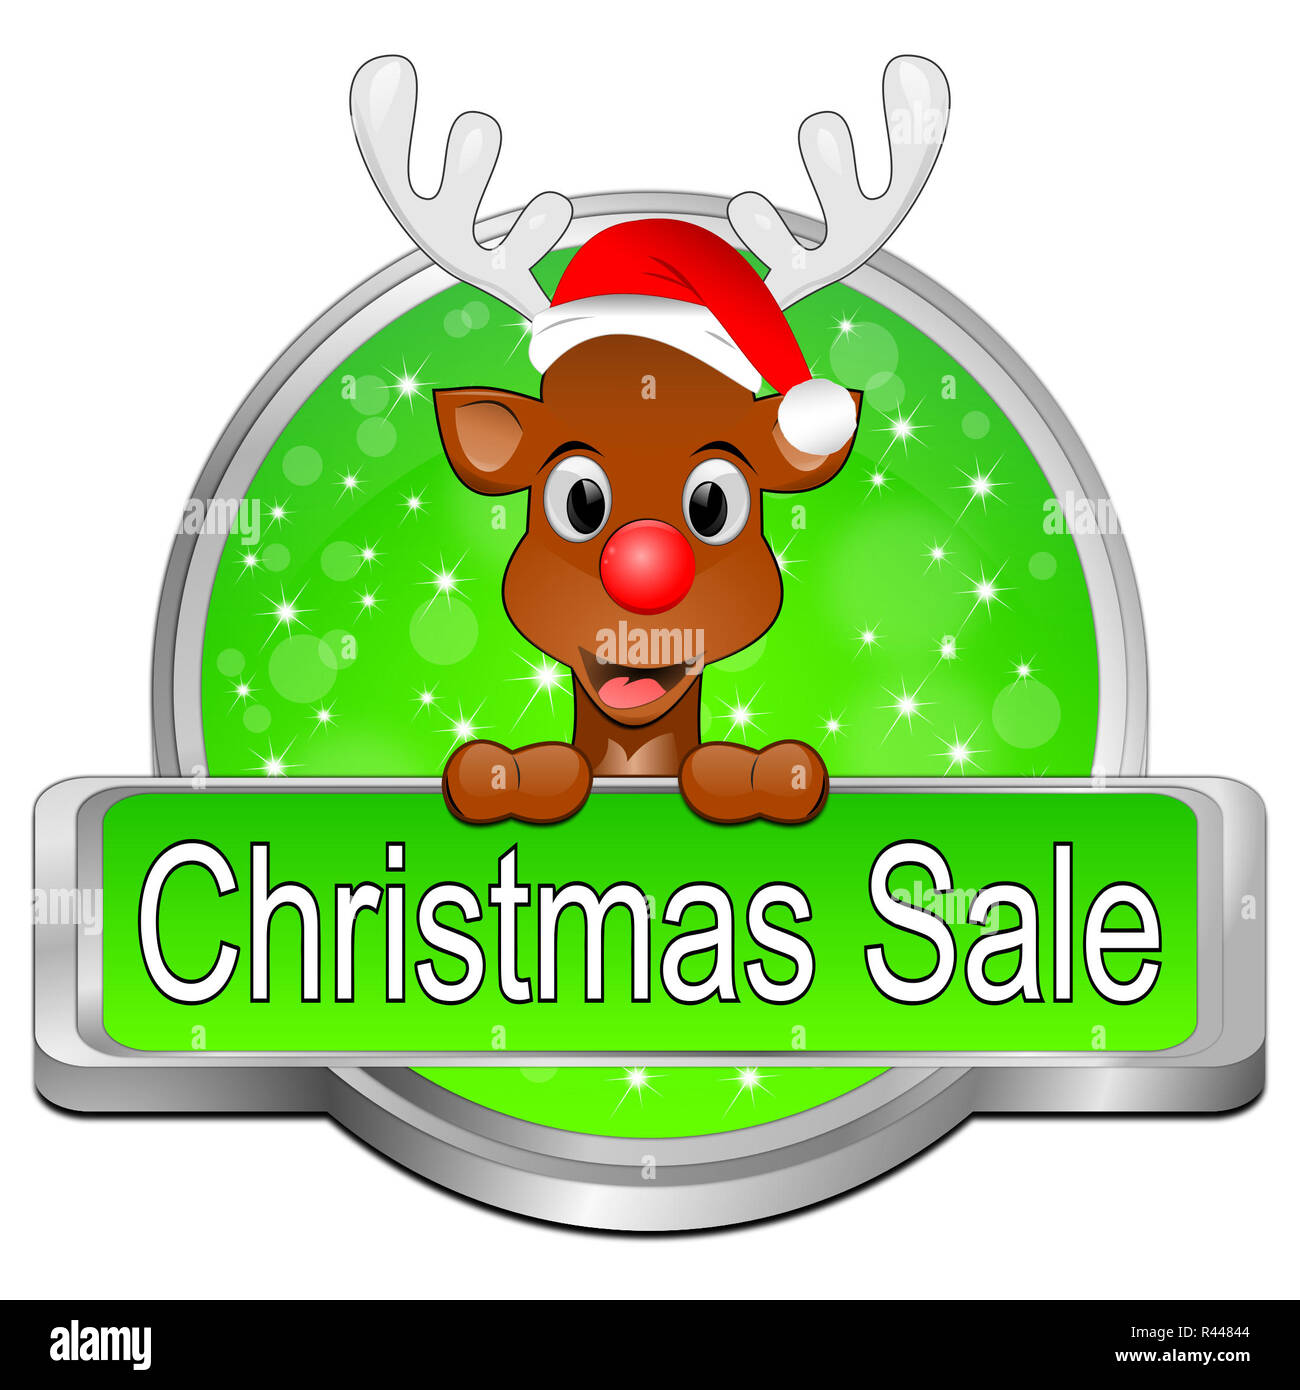 Christmas Sale button - Stock Image